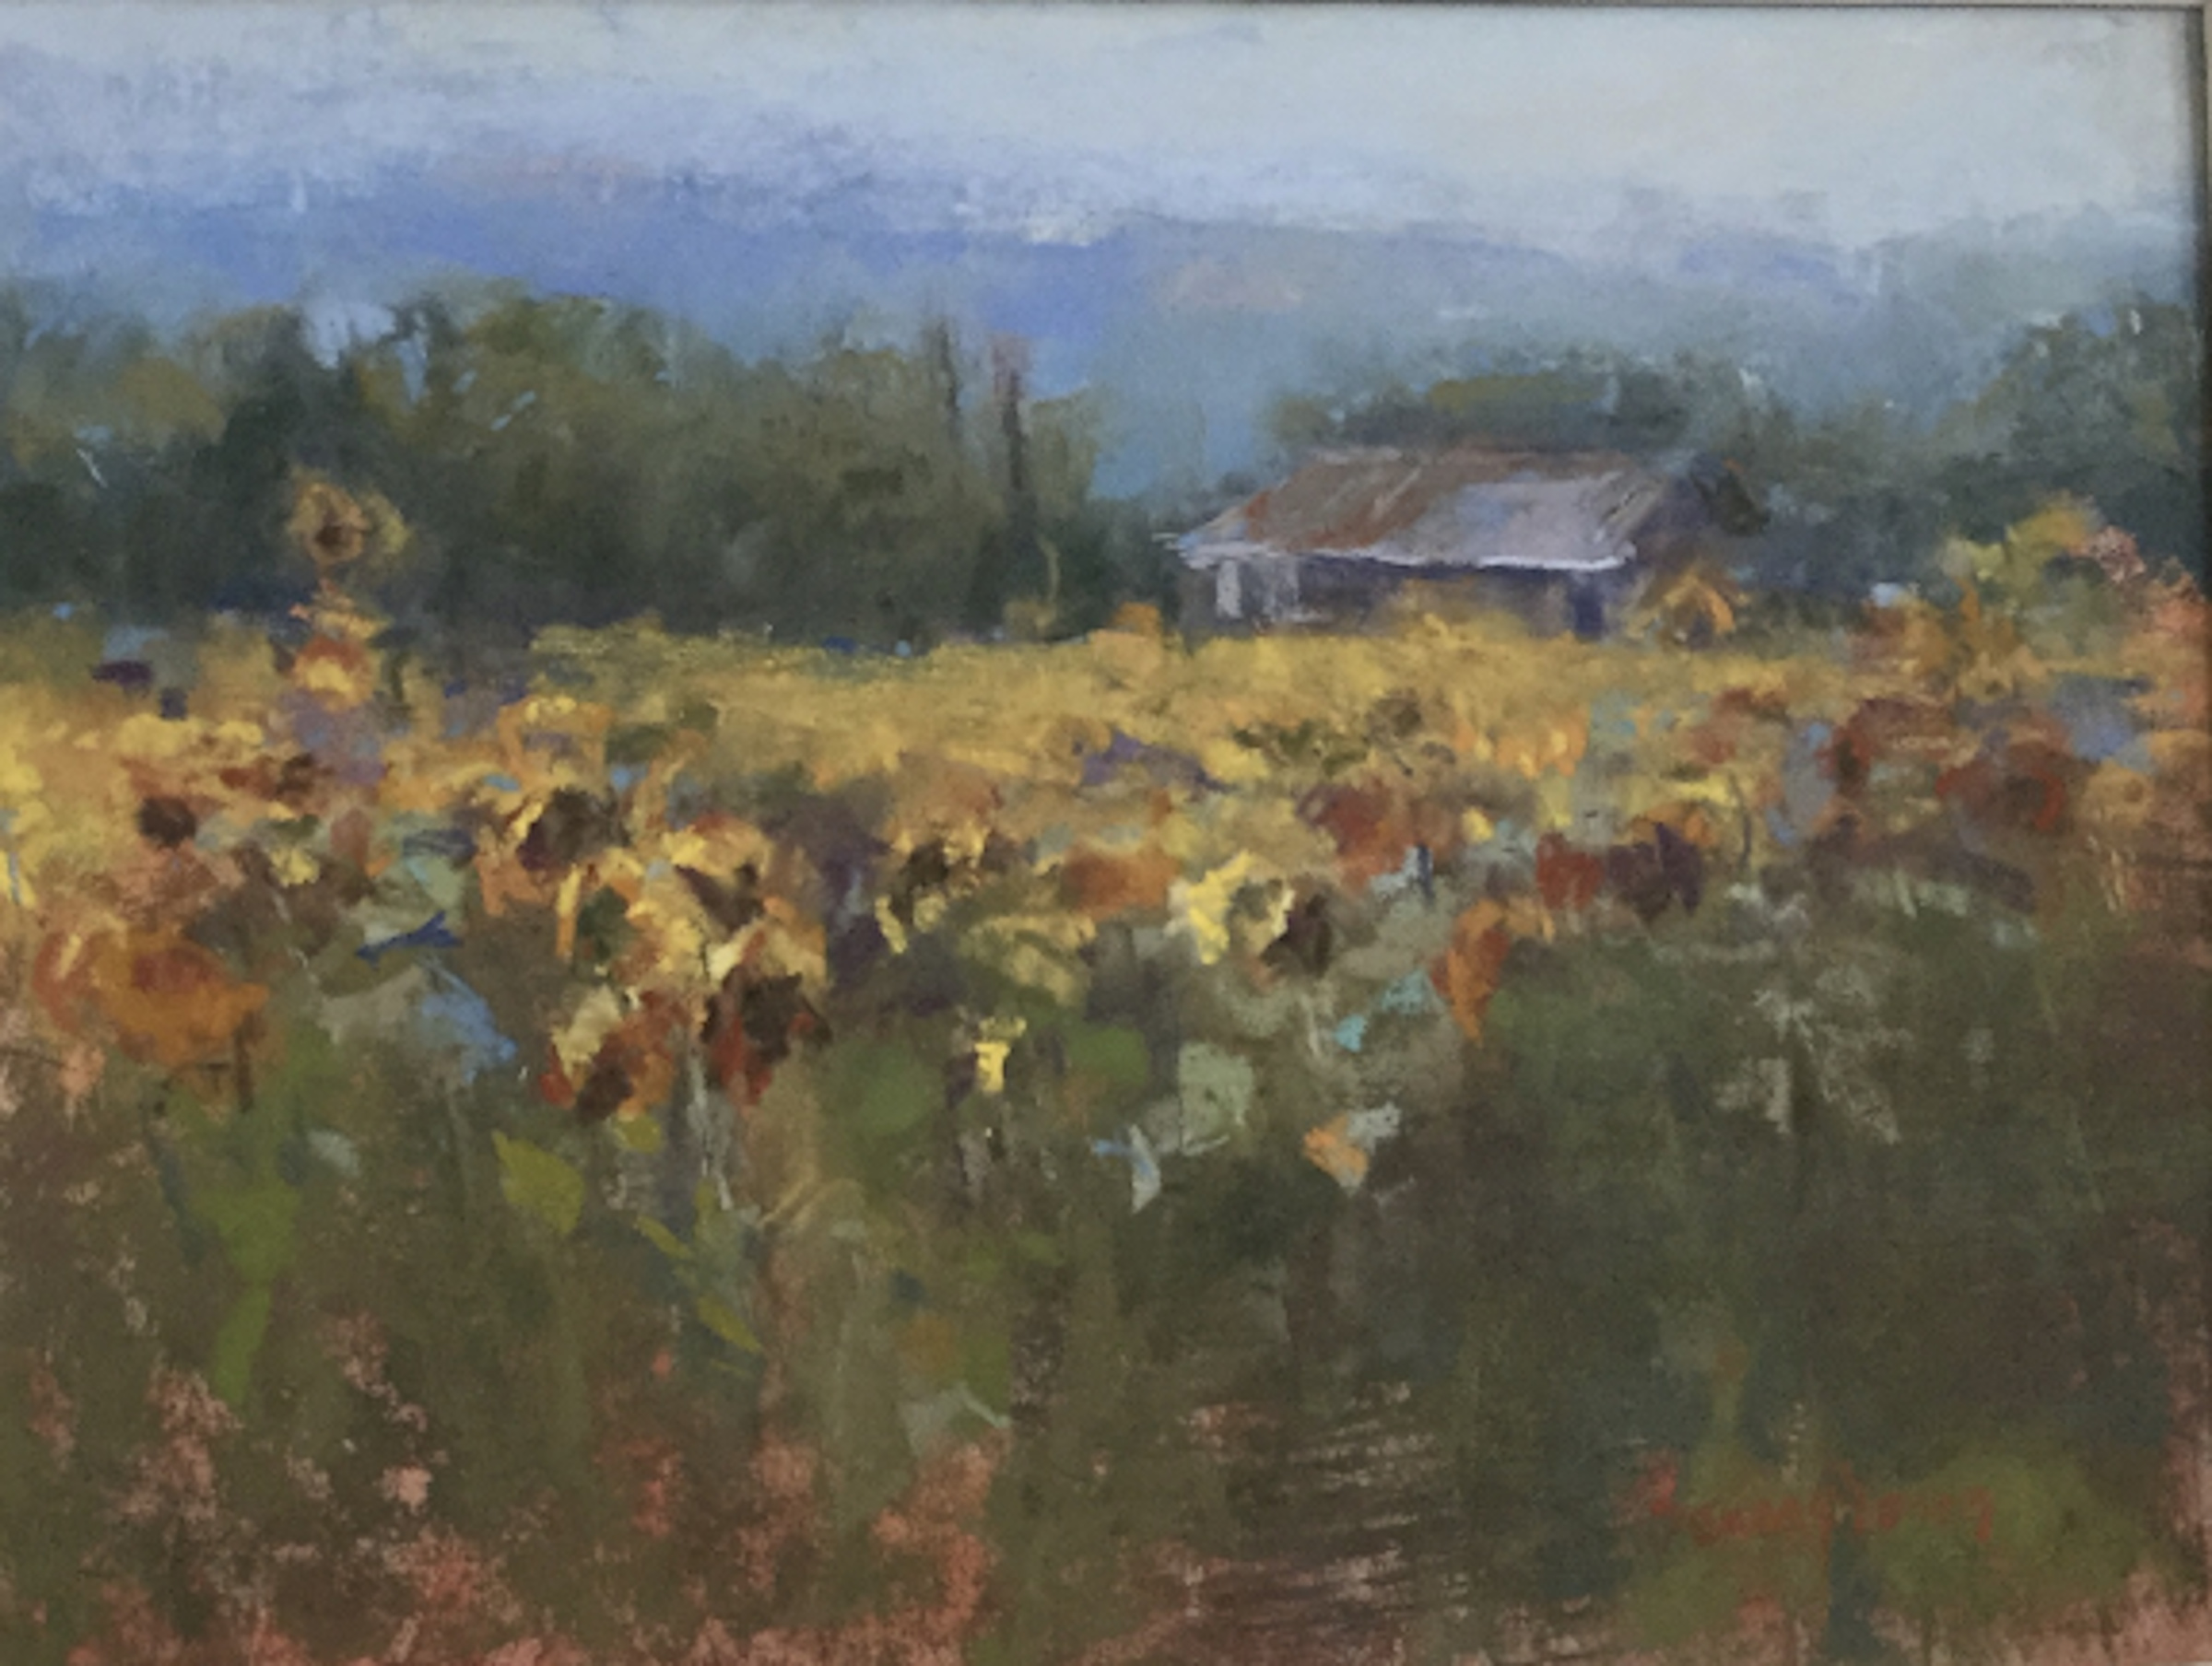 Seung Youn: Sunflower Field